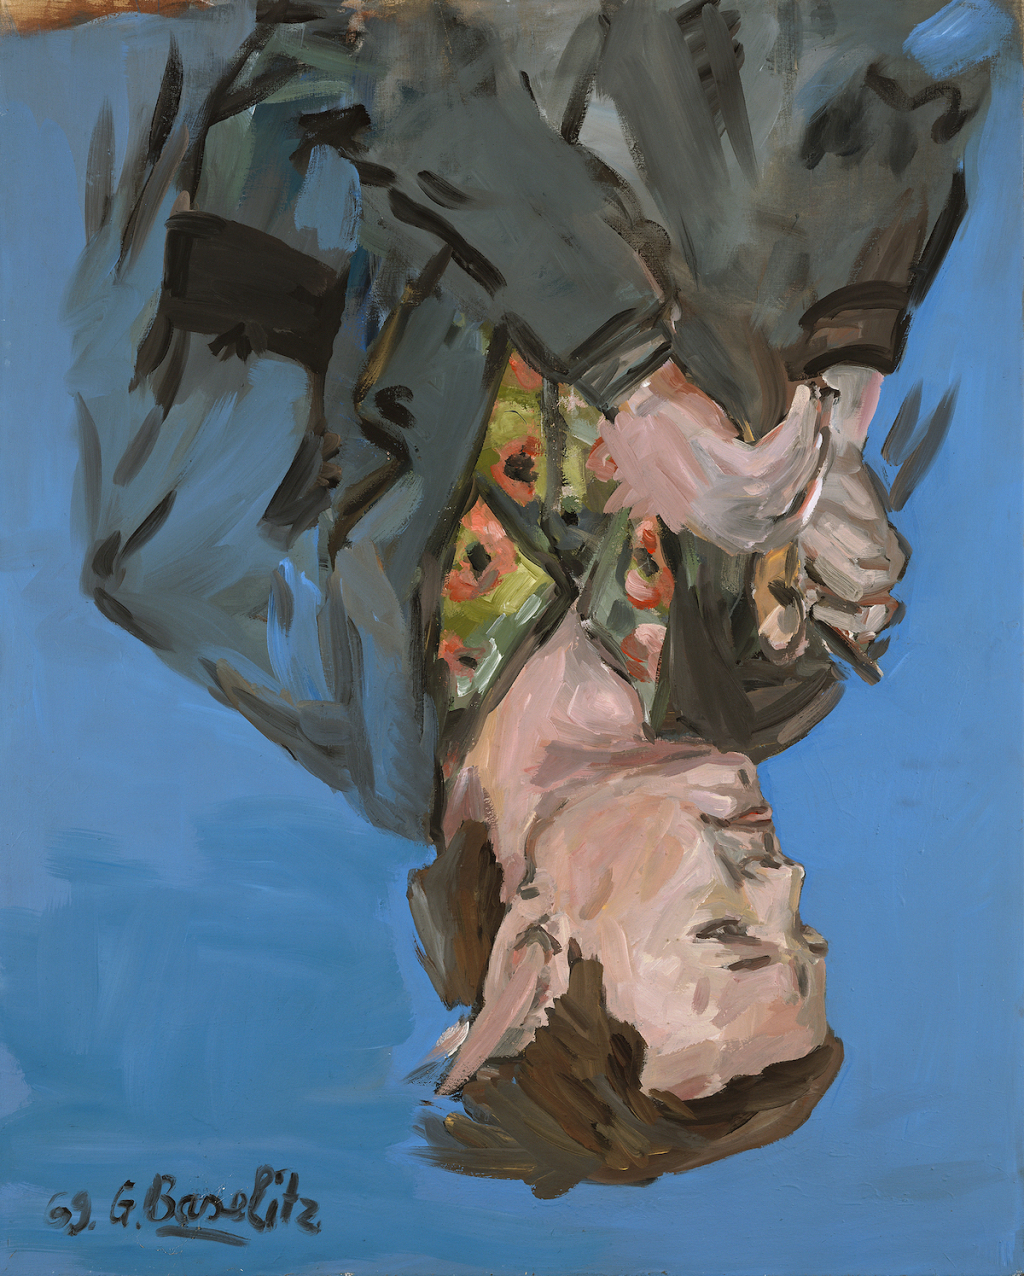 Georg Baselitz Gifts Six Upside-Down Portraits to Metropolitan Museum of Art